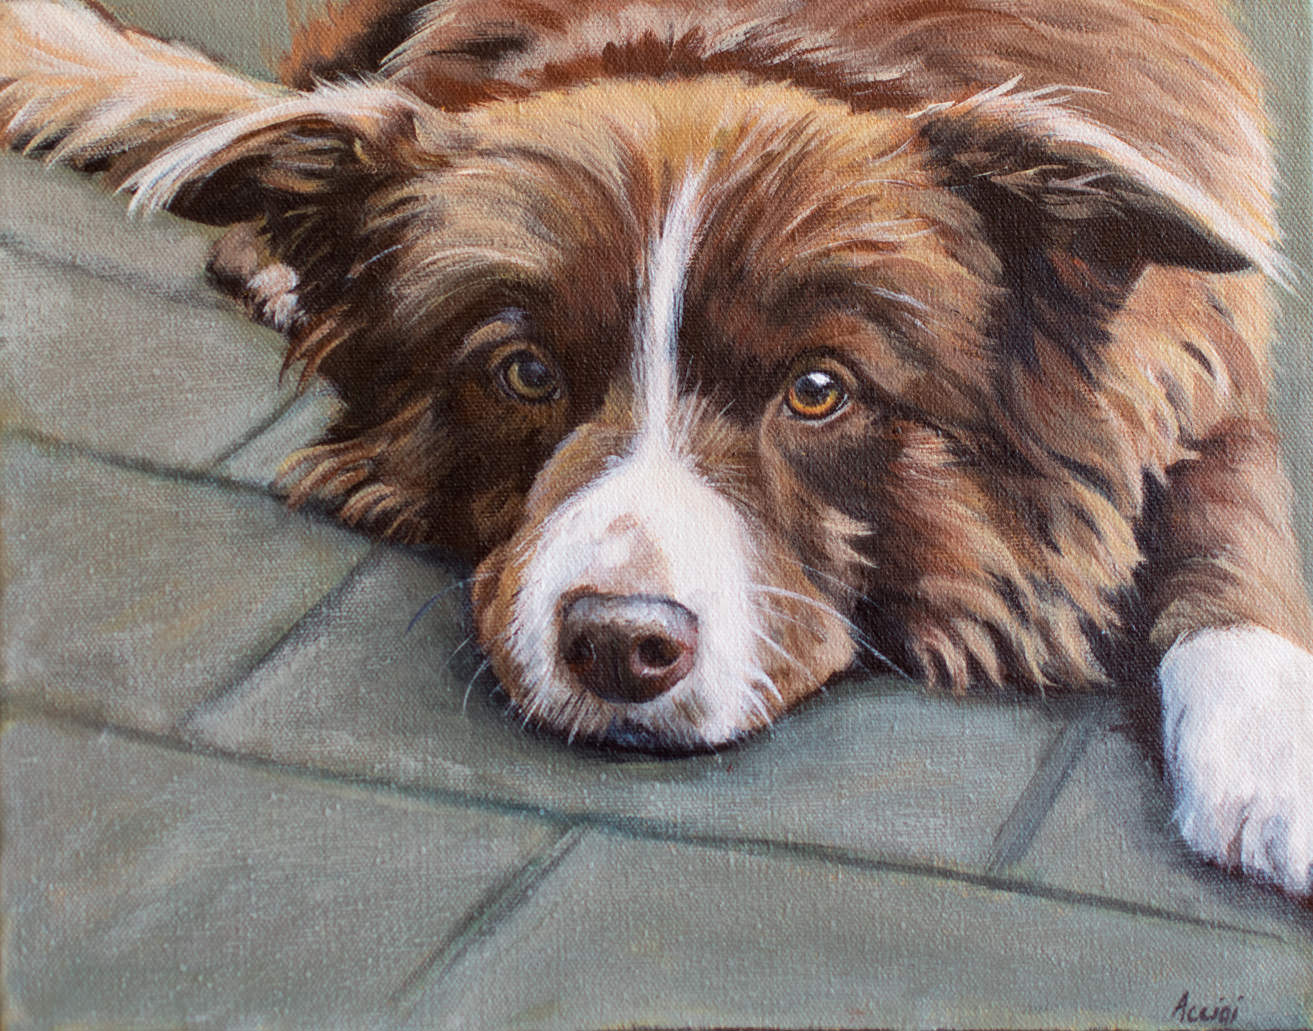 """""""Just Chilin""""border-collie by Lisa Acciai of LAcStudio"""